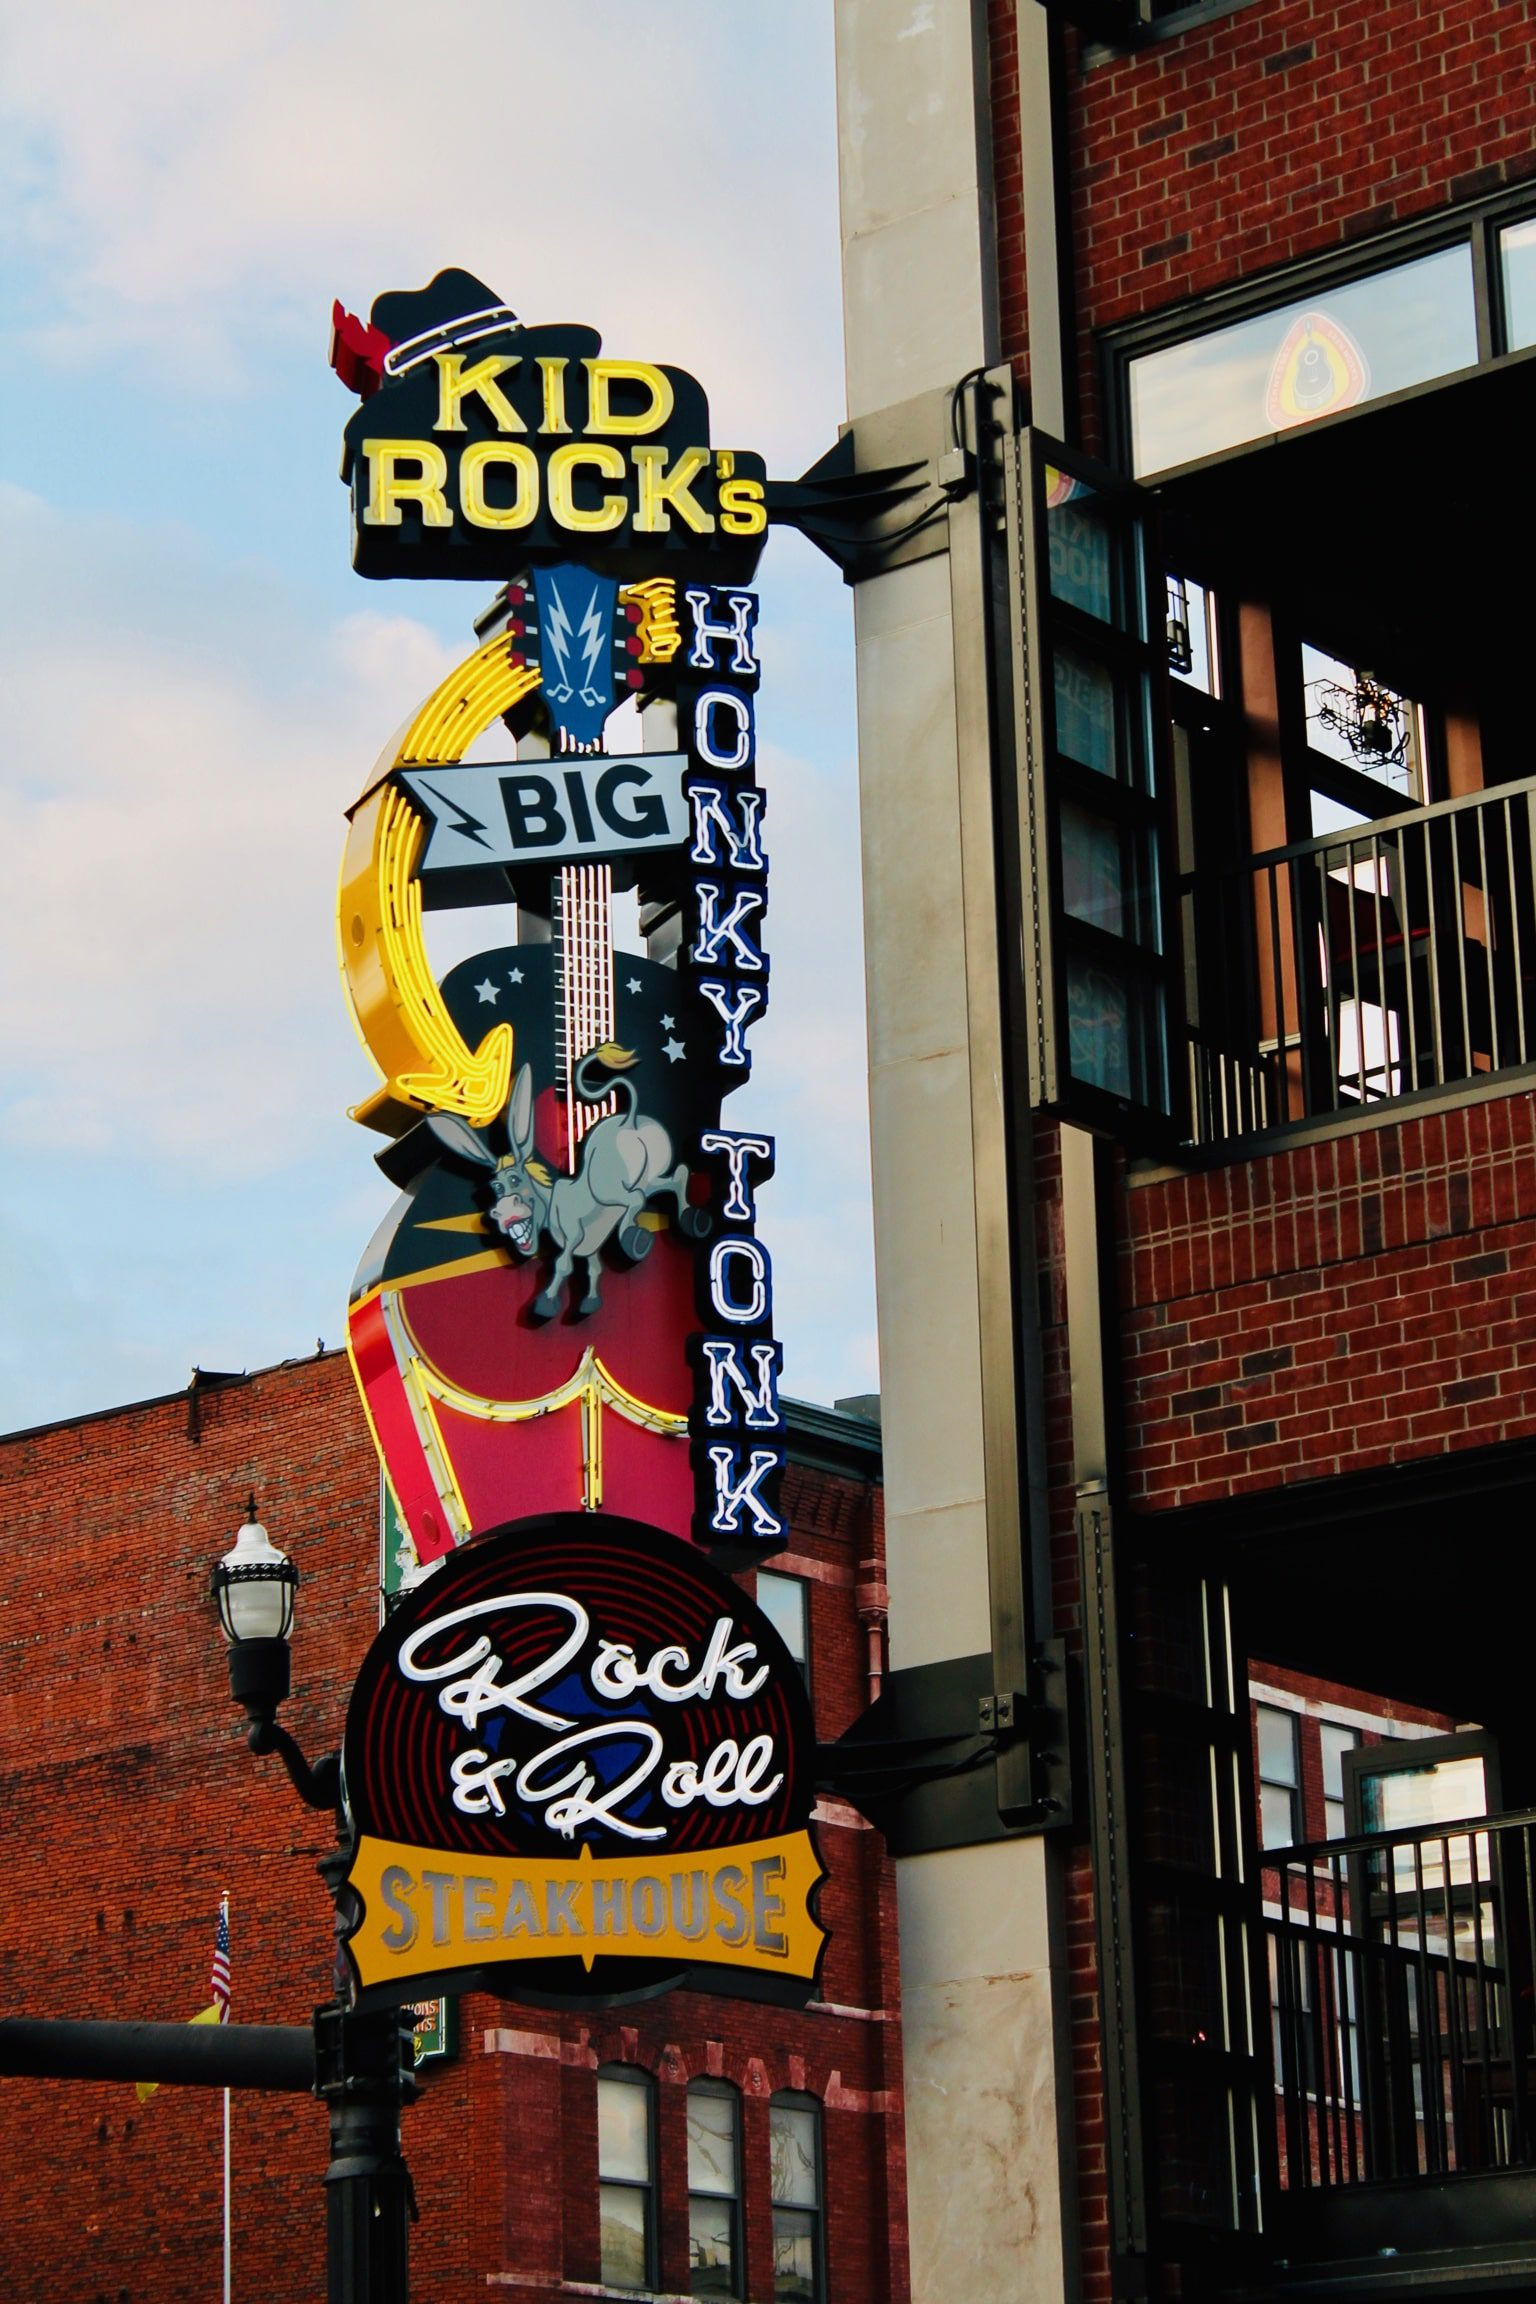 kid rock's honky tonk led sign with led conversion in Nashville